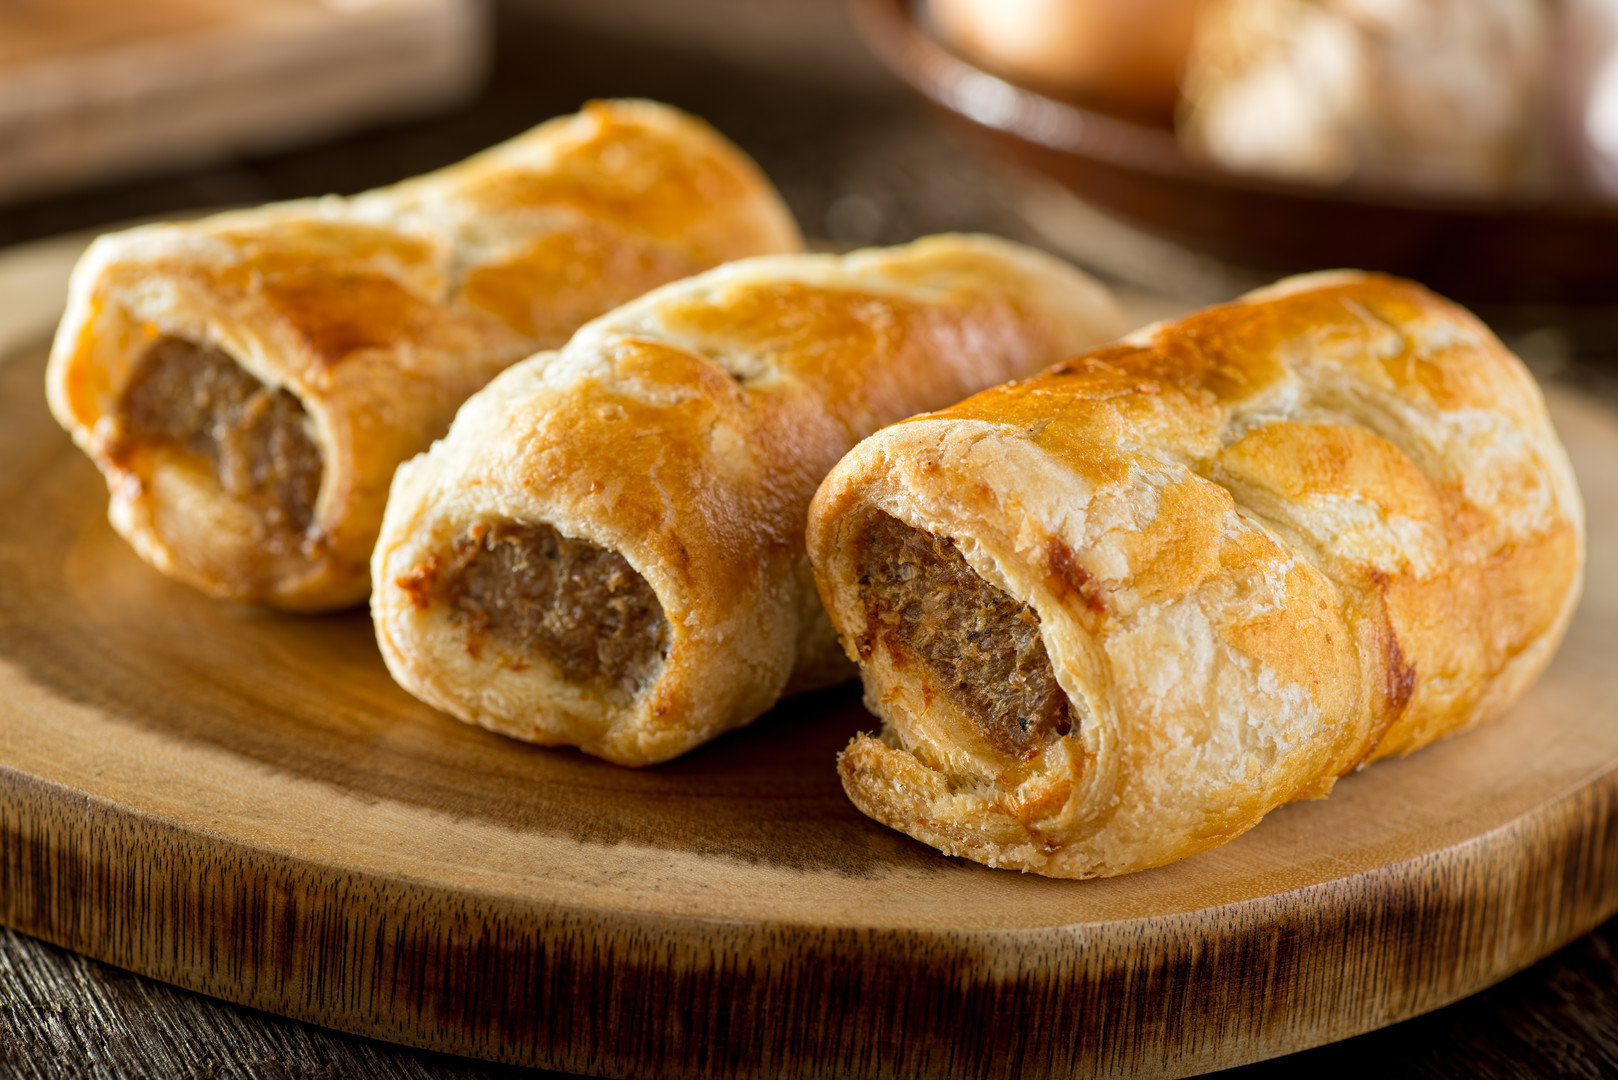 Delicious homemade sausage rolls on a wo